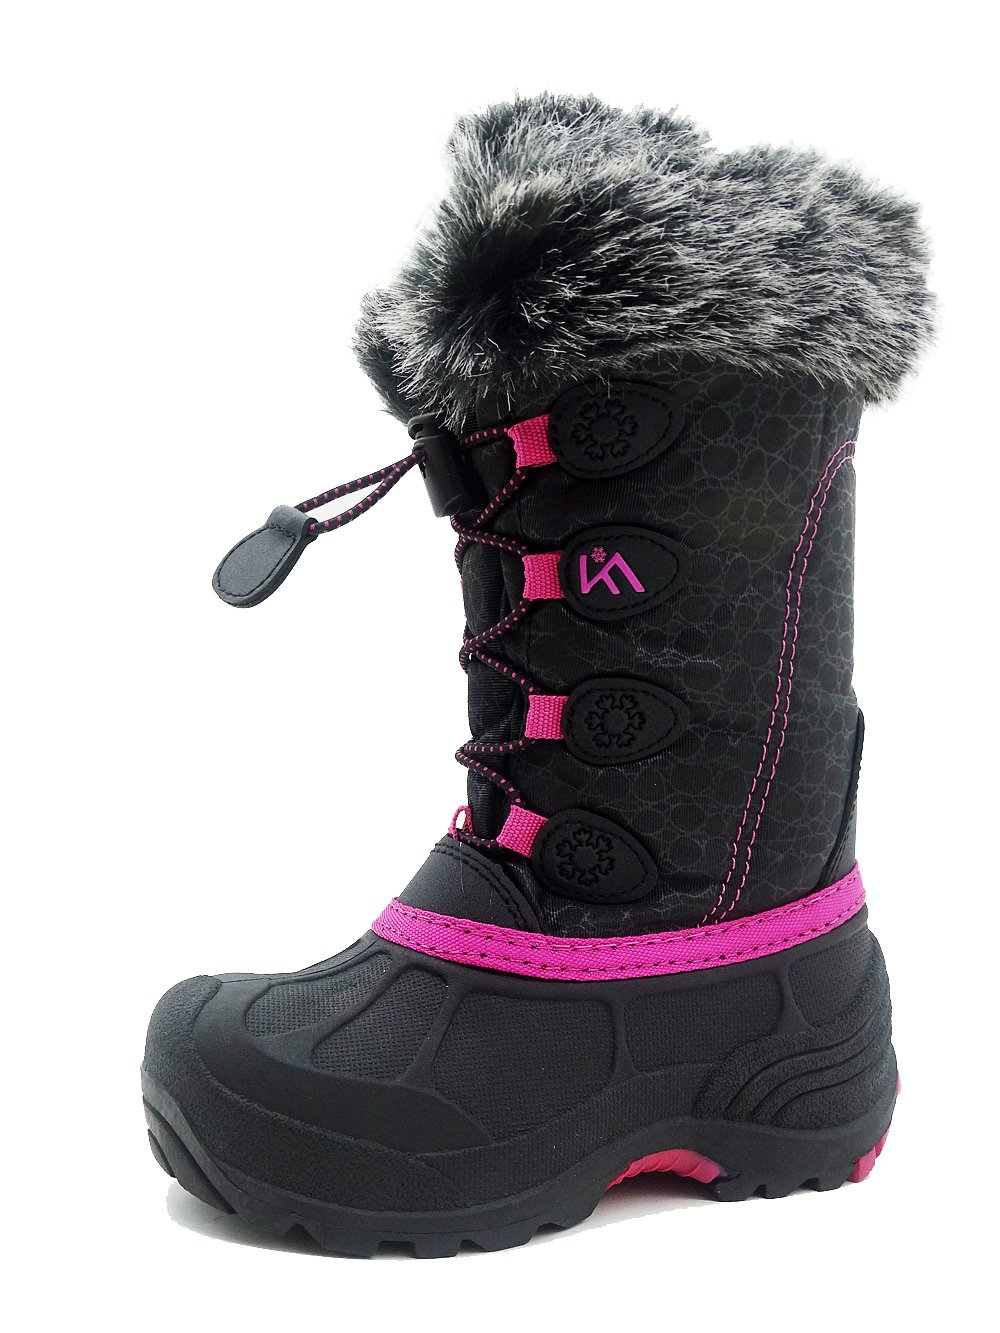 ICEFACE Kids Winter Snow Boots Waterproof and Insulated for Girls and Boys (4 M US Little Kid, Pink)